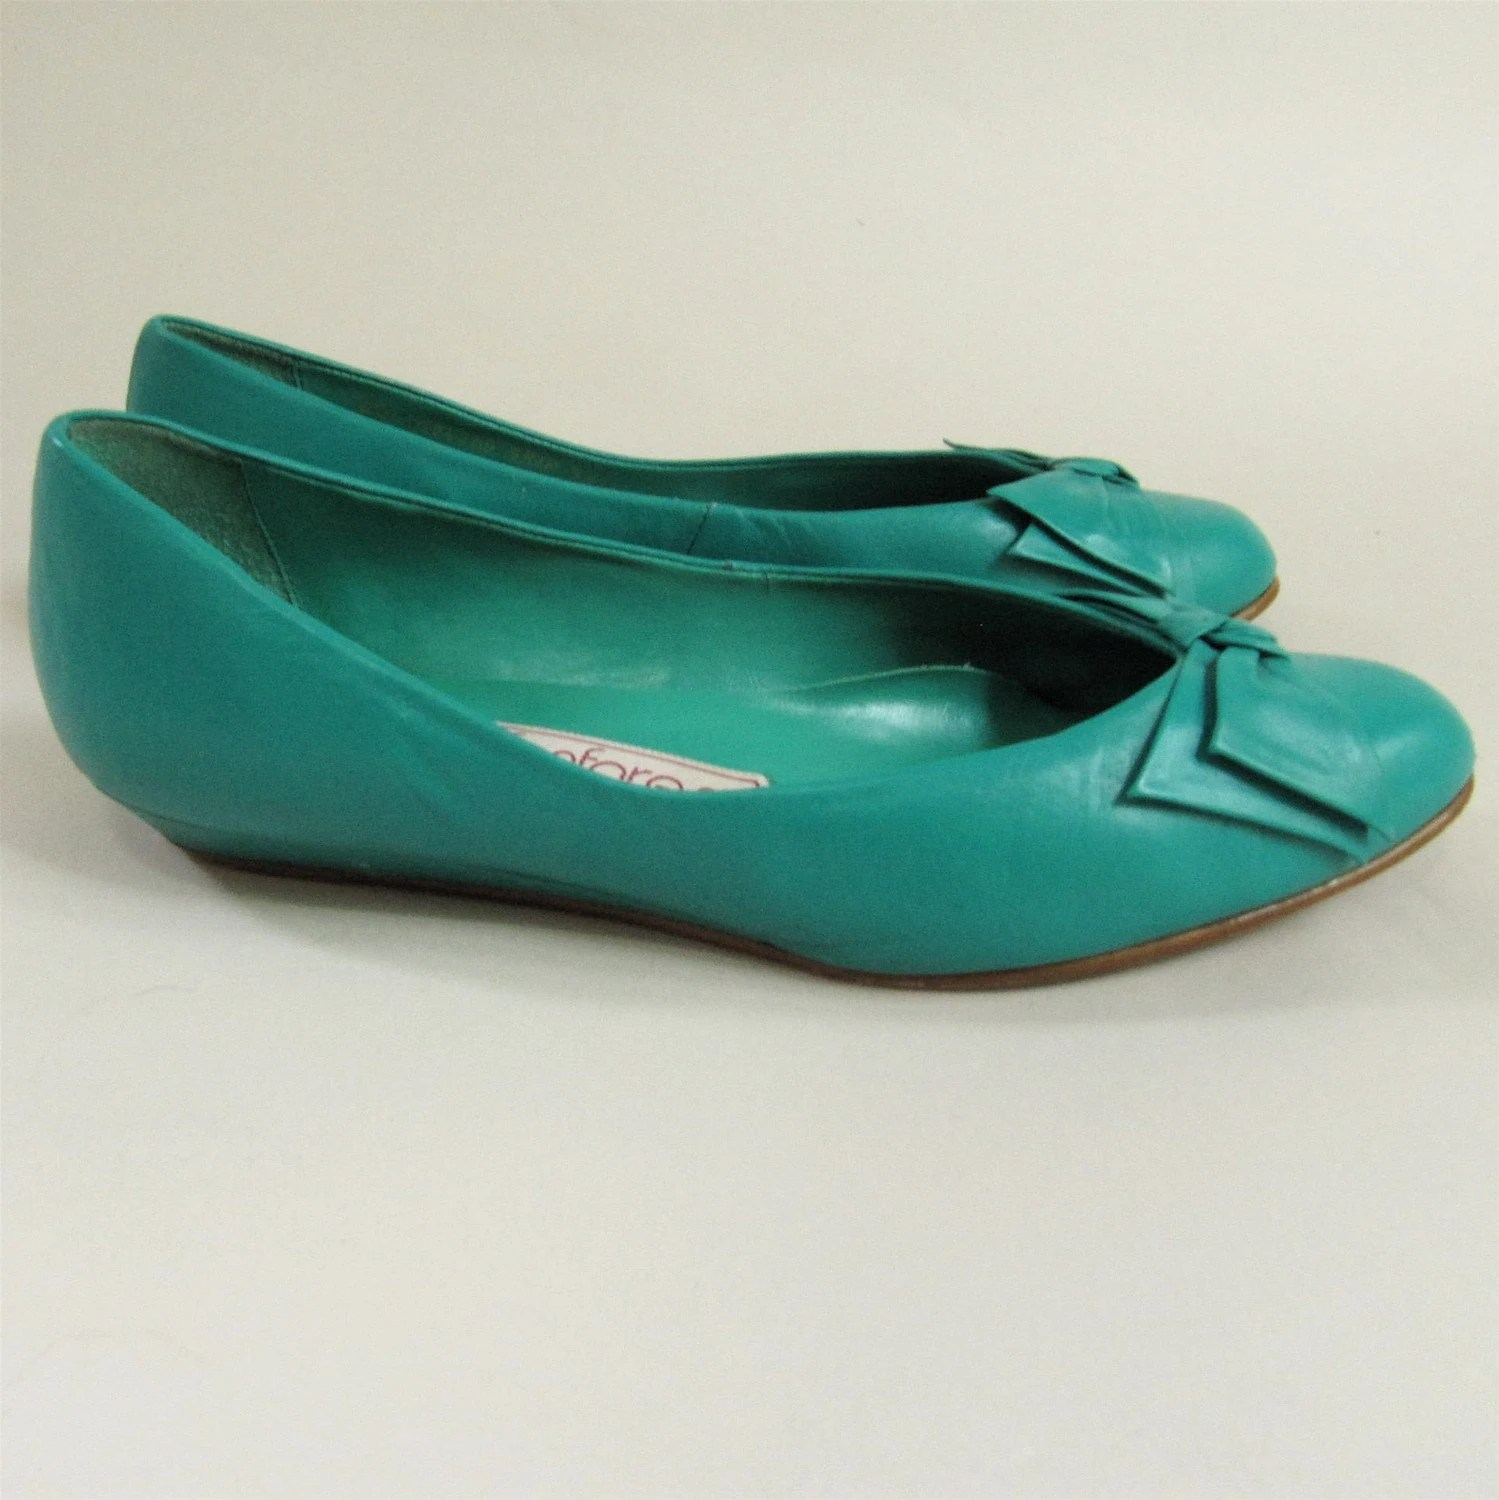 Emerald Green Ballerina Wedges